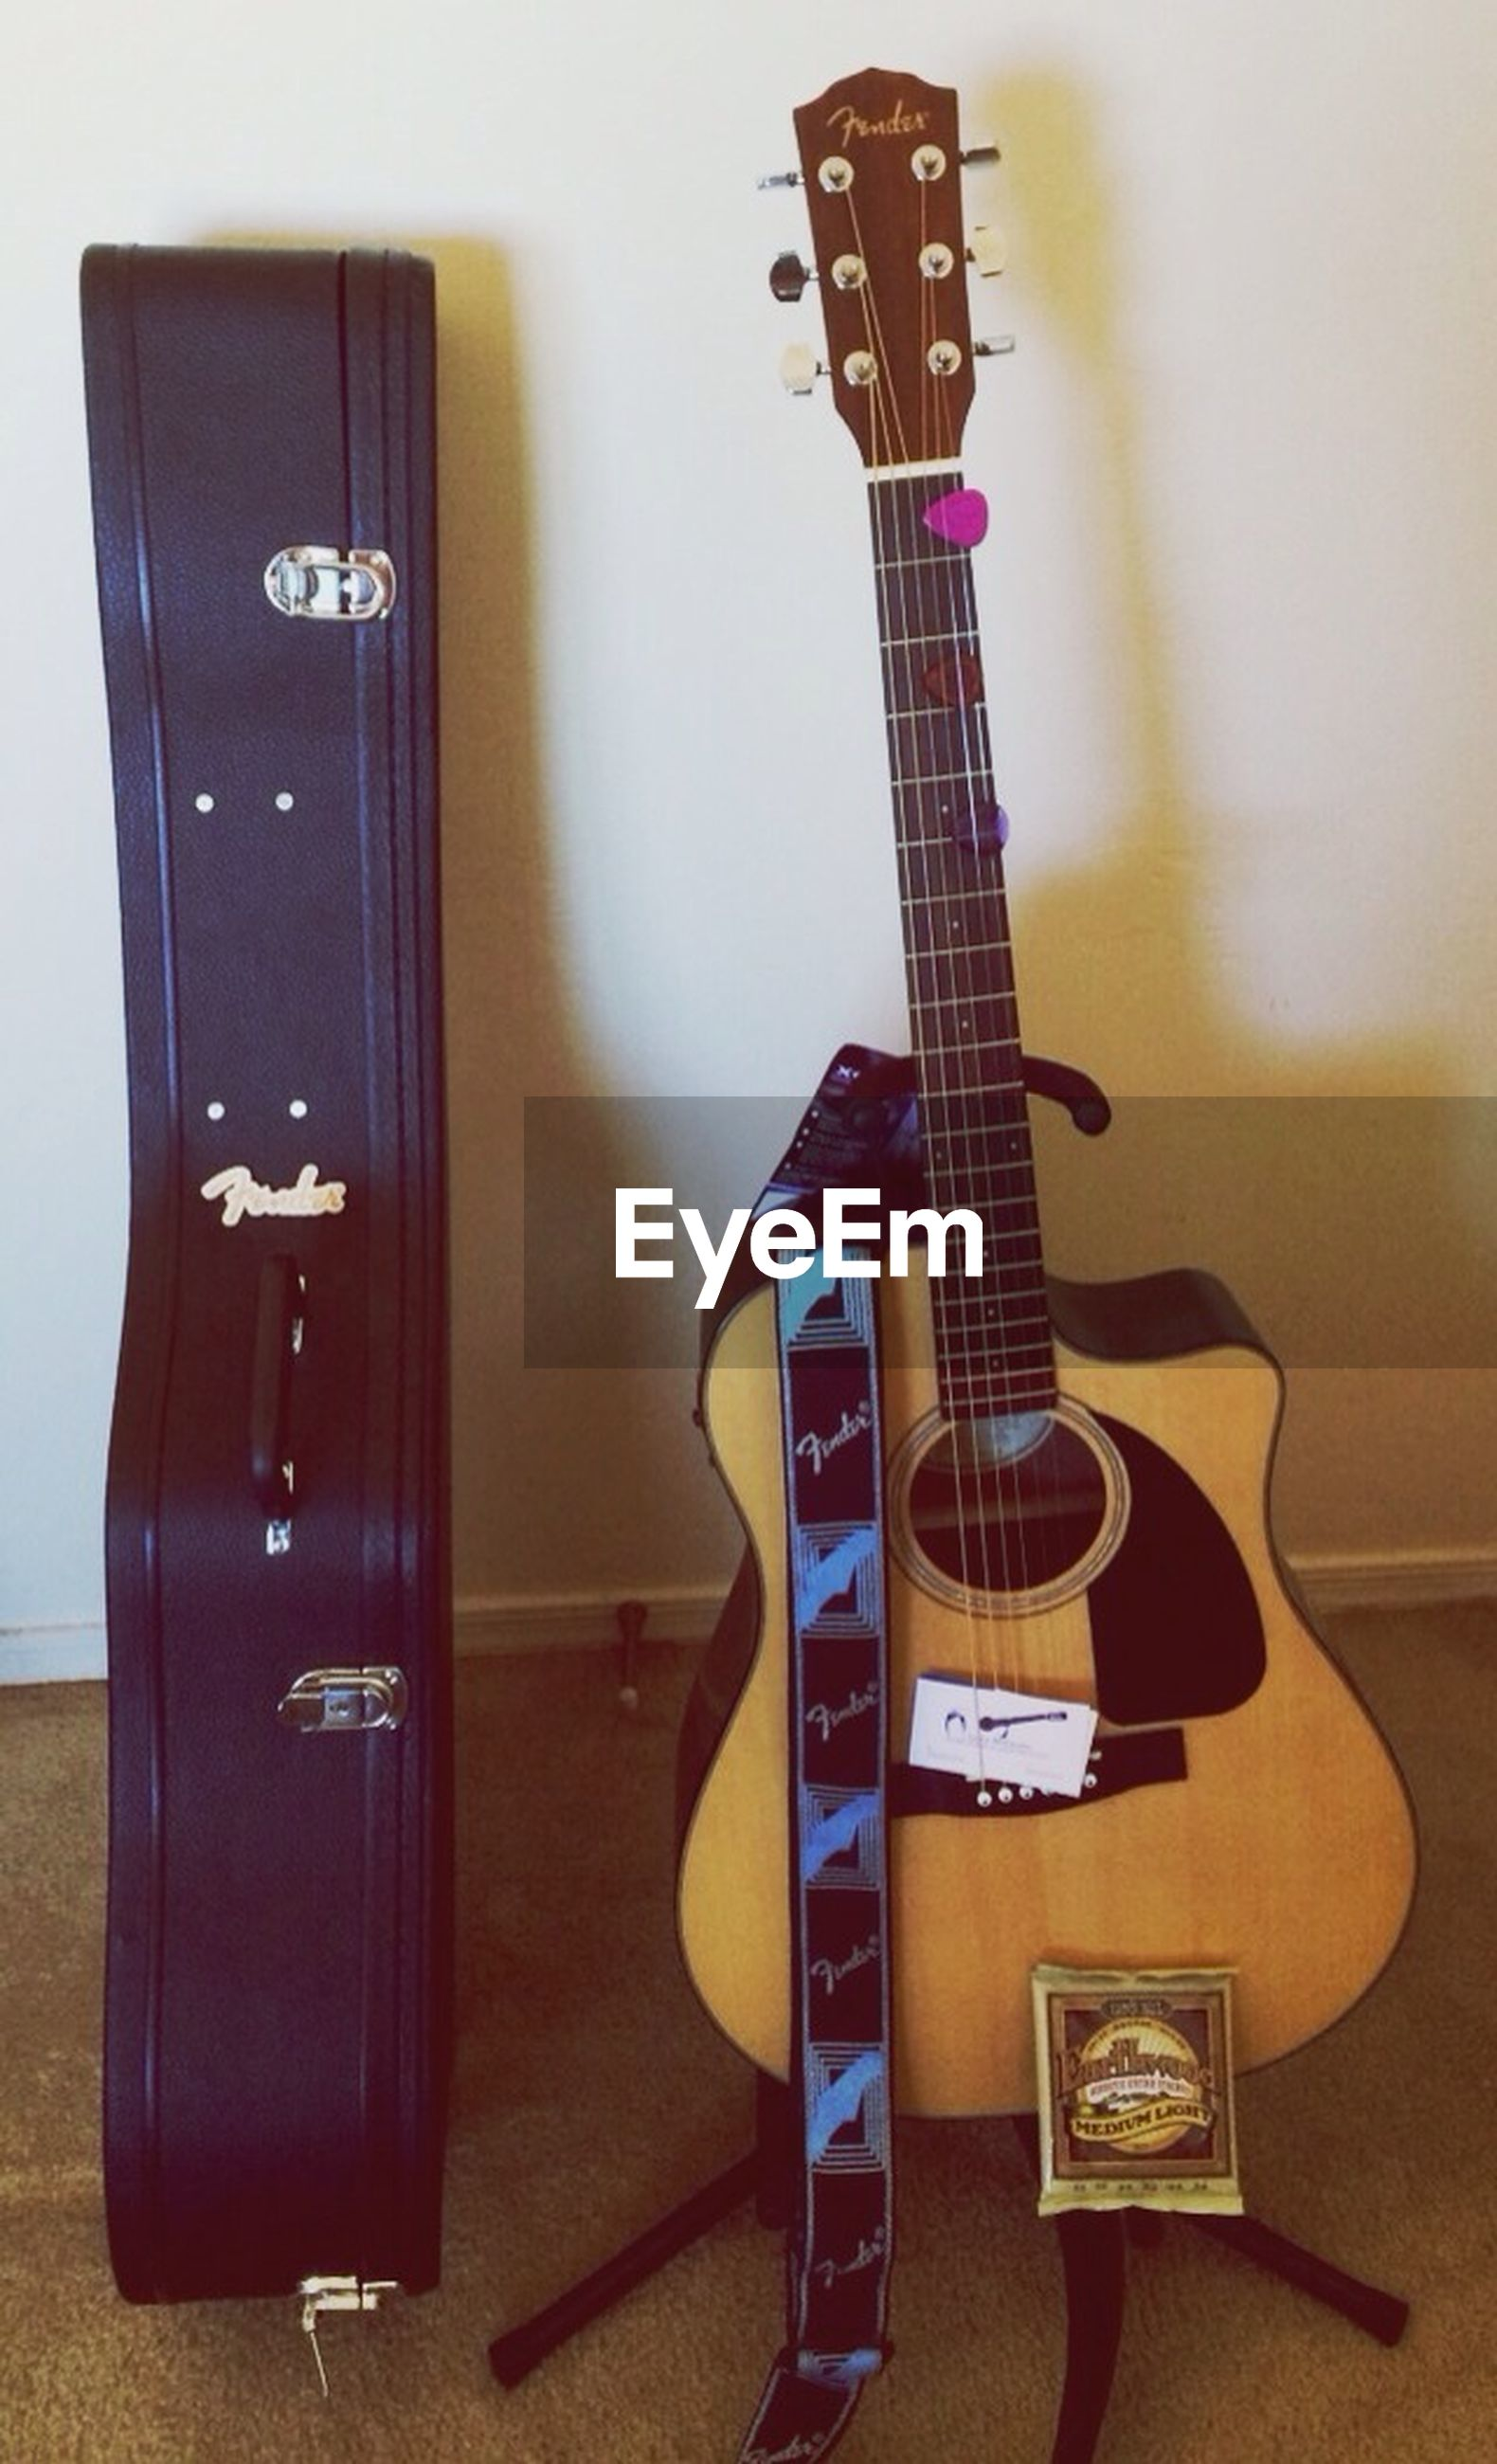 indoors, music, musical instrument, arts culture and entertainment, guitar, technology, musical equipment, still life, communication, musical instrument string, chair, table, string instrument, home interior, absence, acoustic guitar, old-fashioned, no people, wireless technology, audio equipment